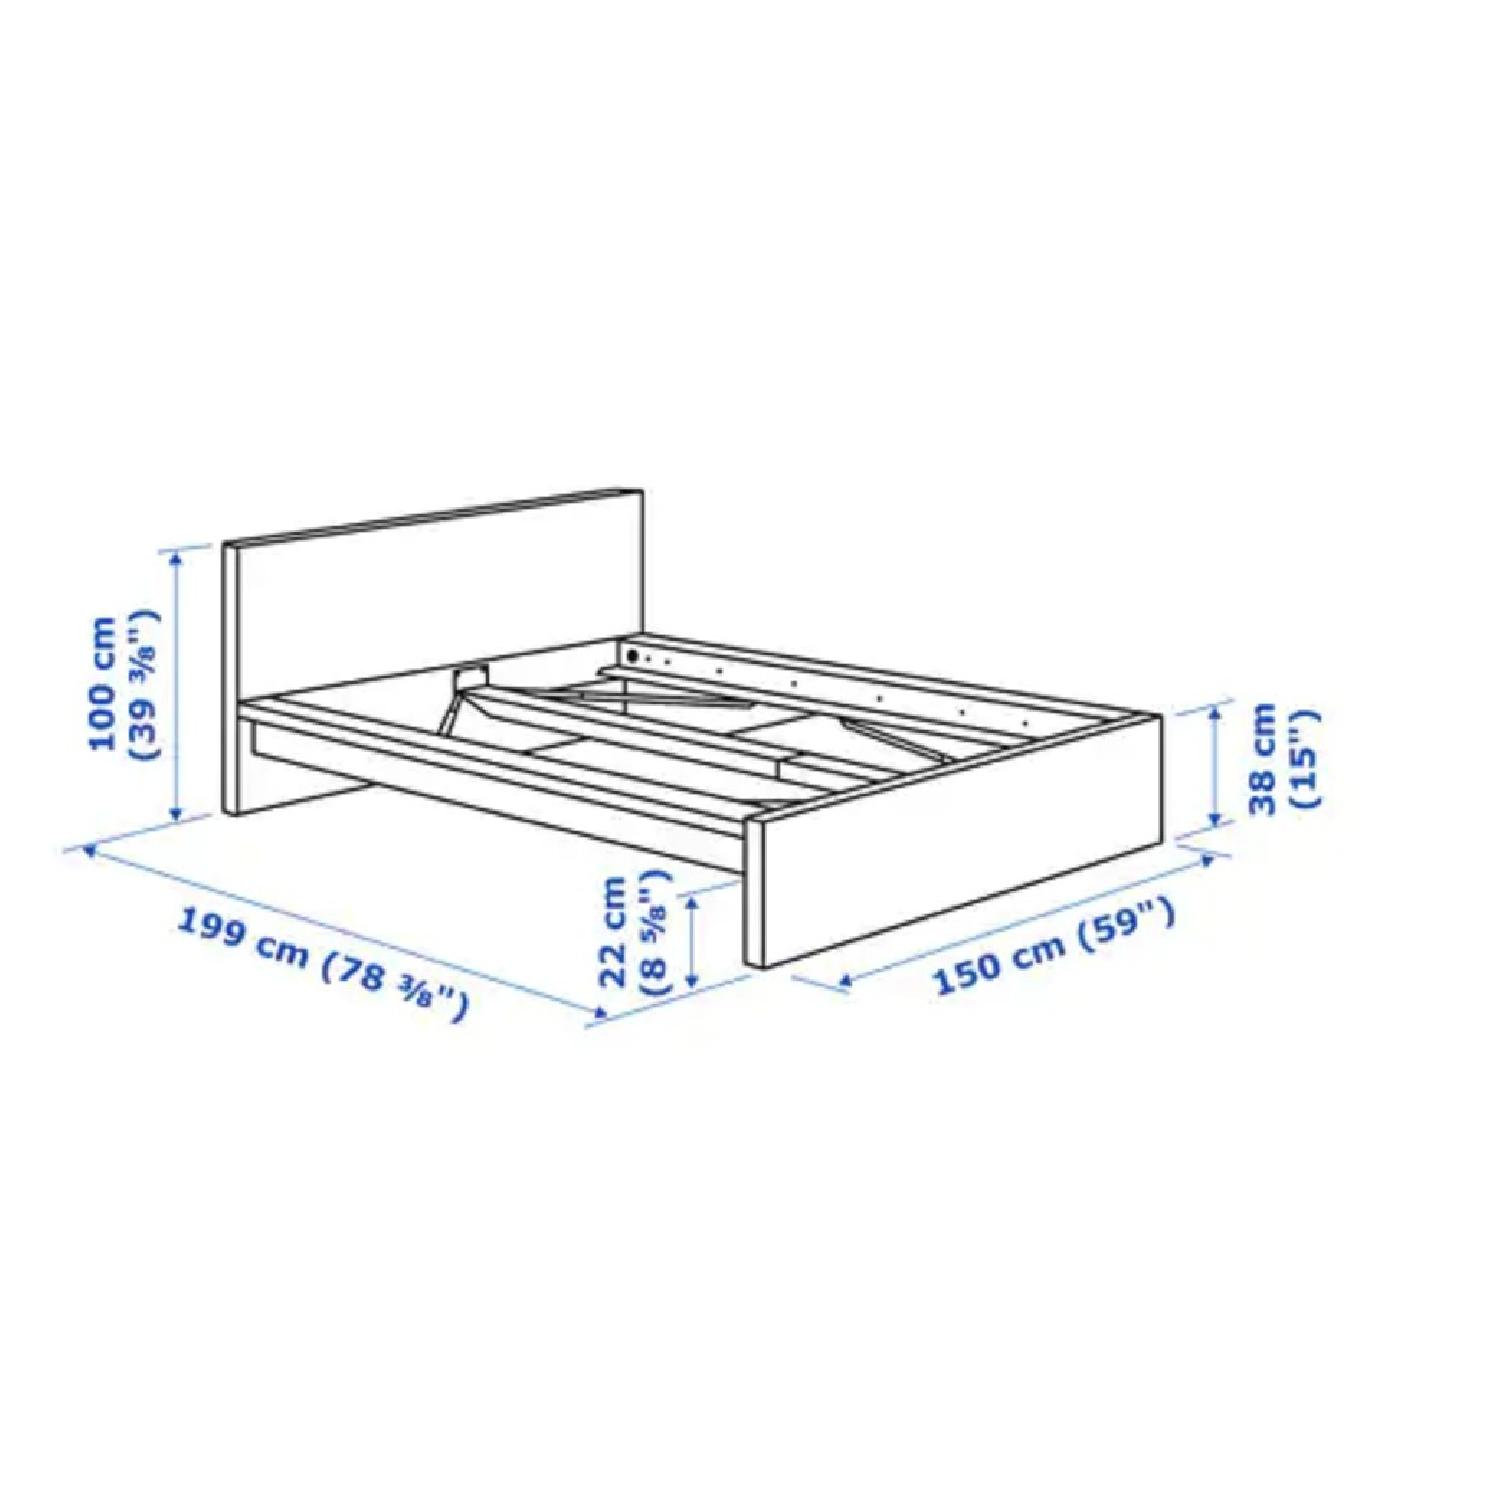 Ikea Malm Full Size Bed Frame